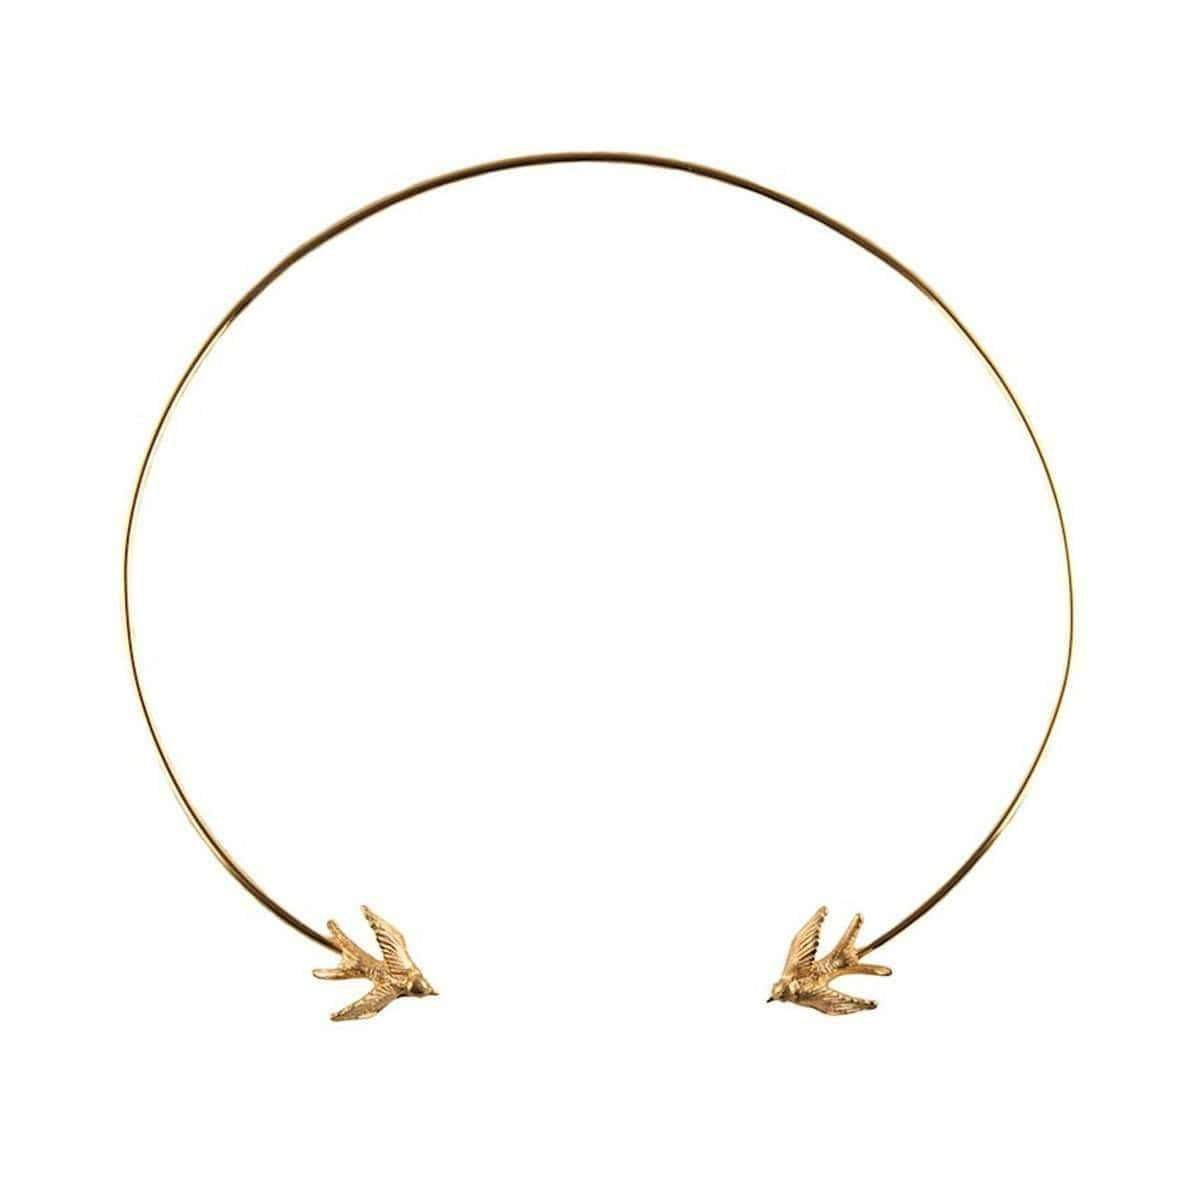 Gold Swallow Torc Necklace - Roz Buehrien